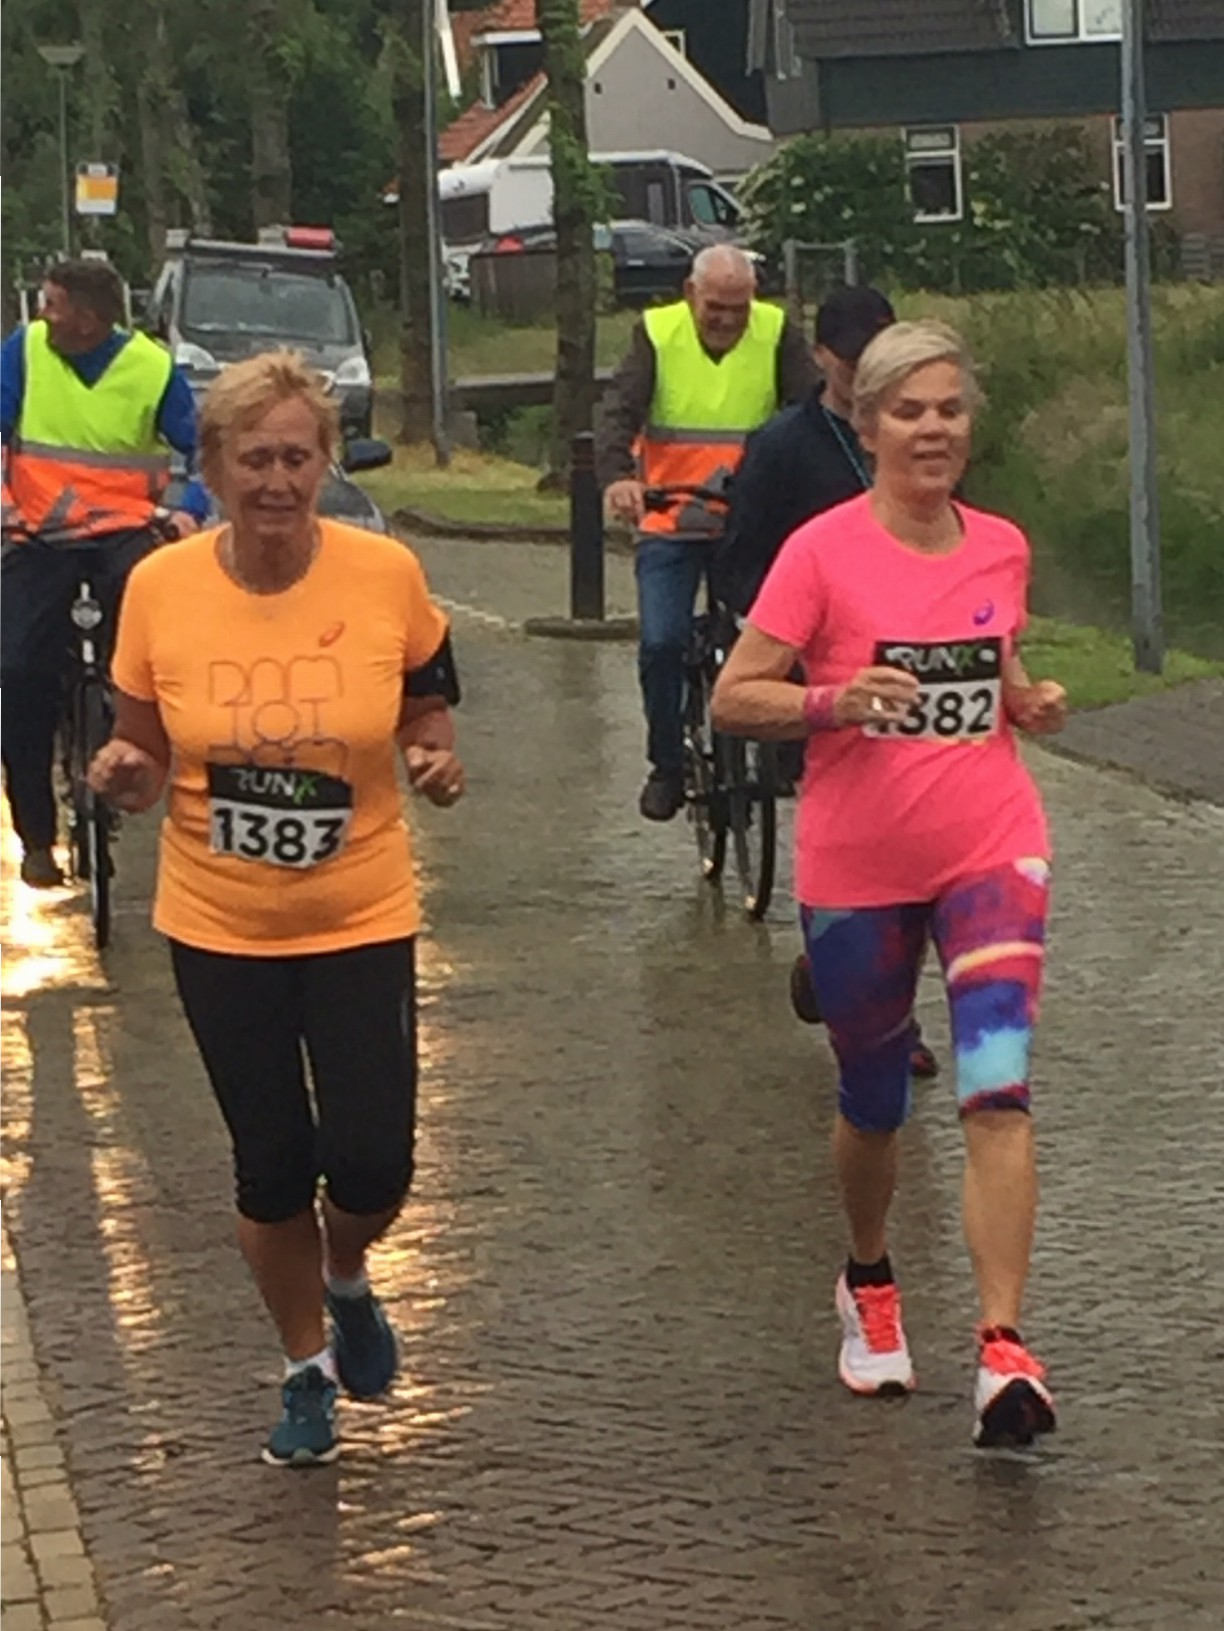 Luilakpolderloop 20 dames 2019